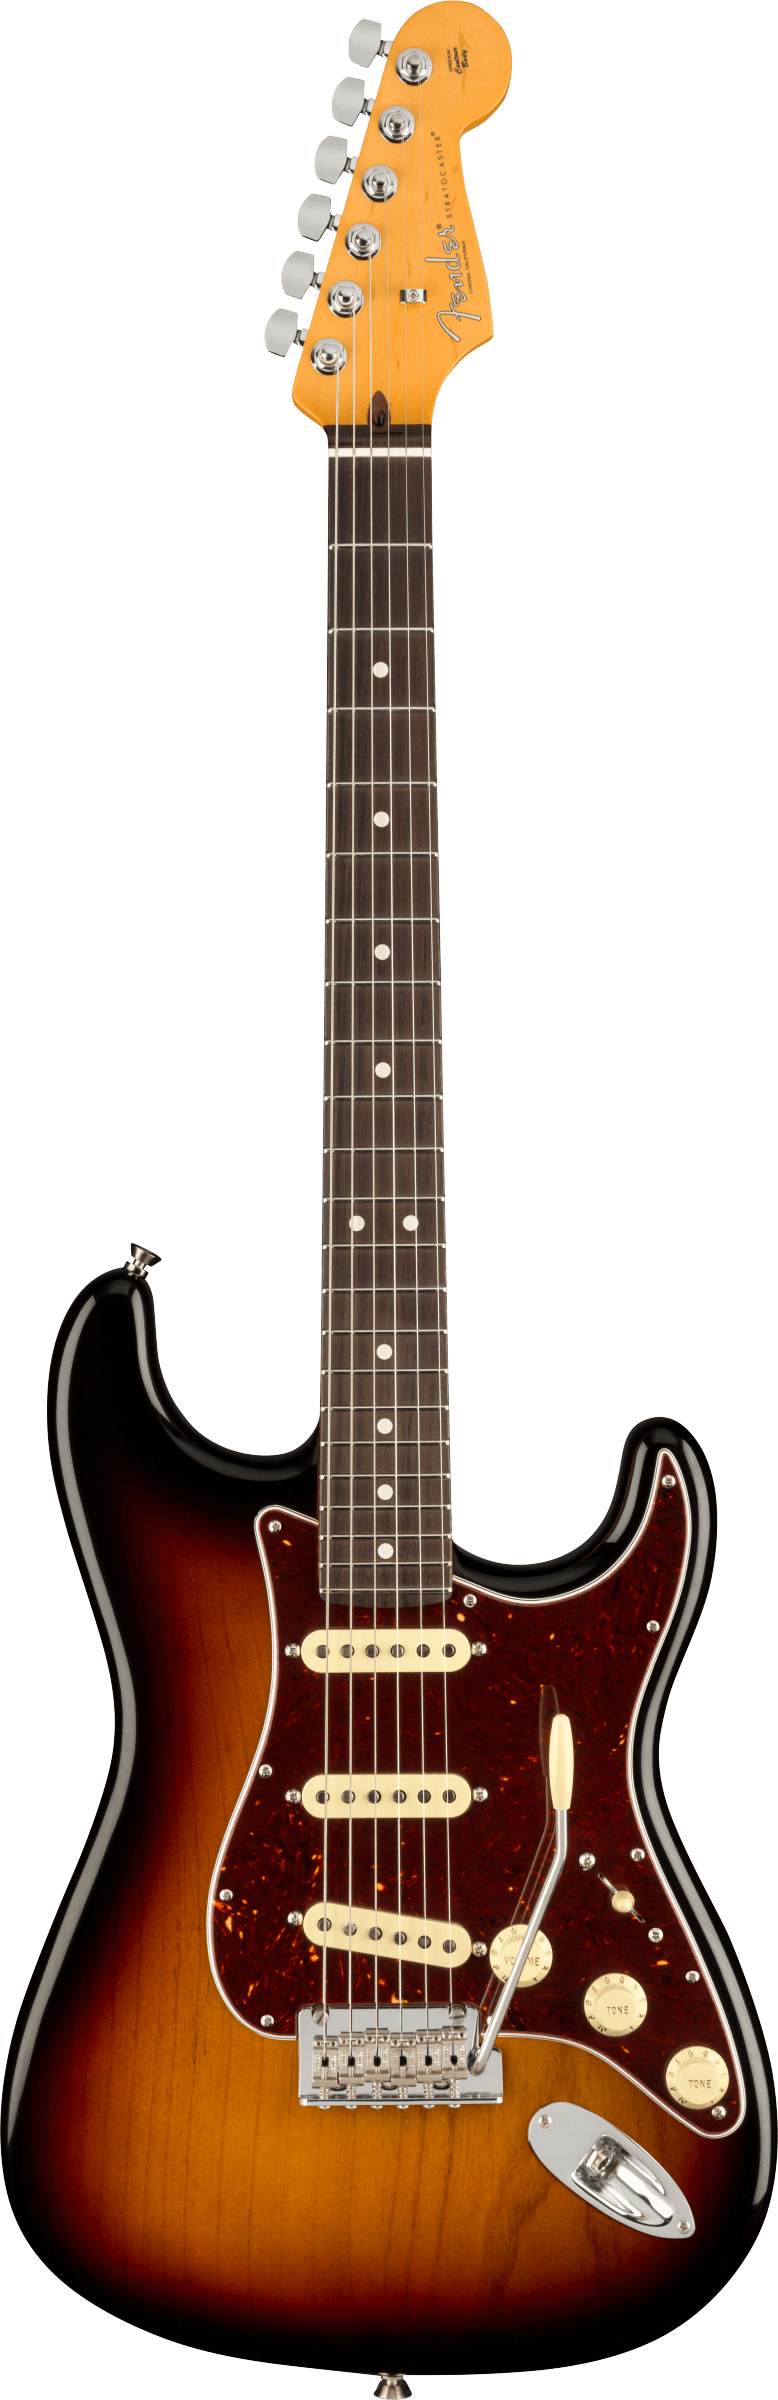 Fender American Professional II Stratocaster 3-Color Sunburst with Case